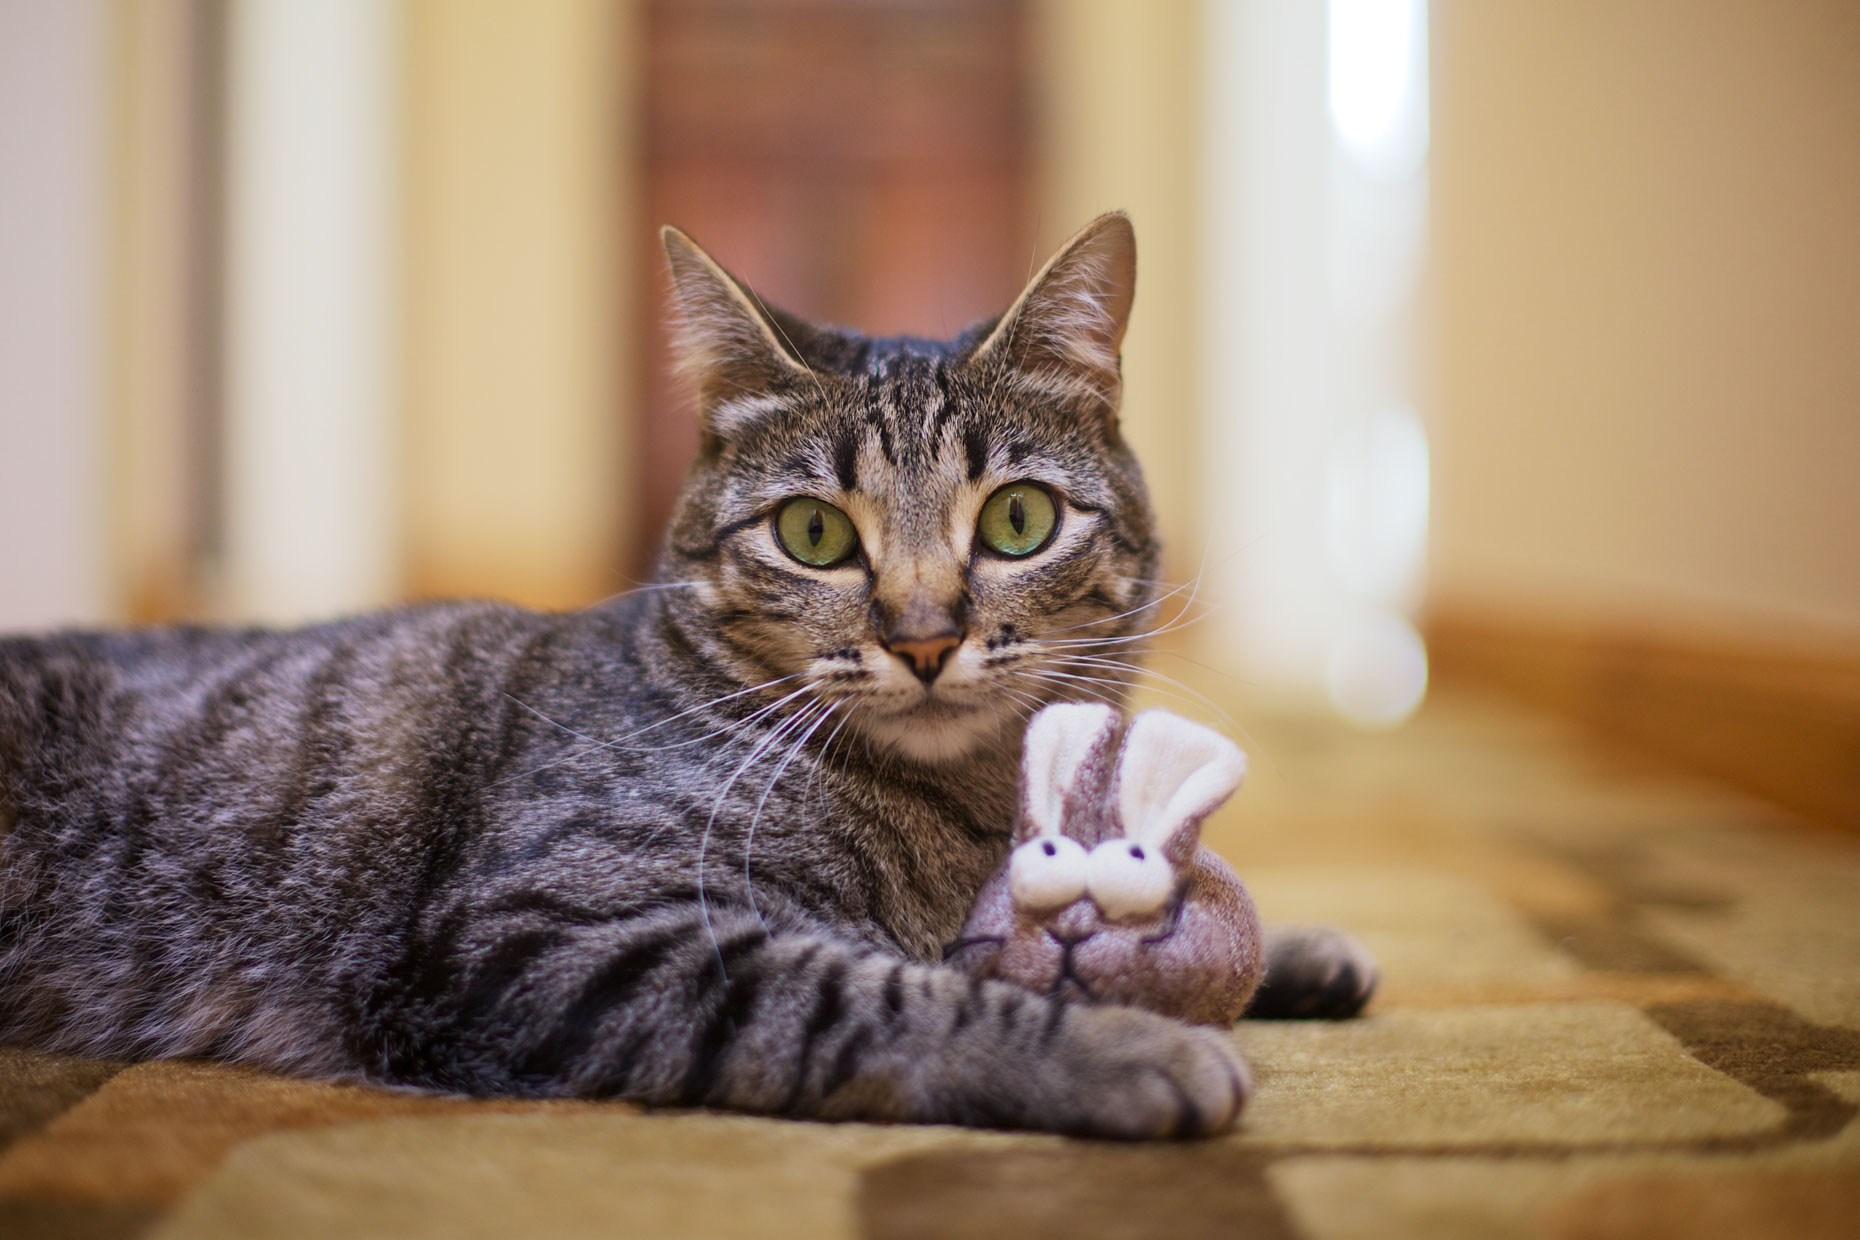 Cat and Pet Photography | Cat with Toy by Mark Rogers